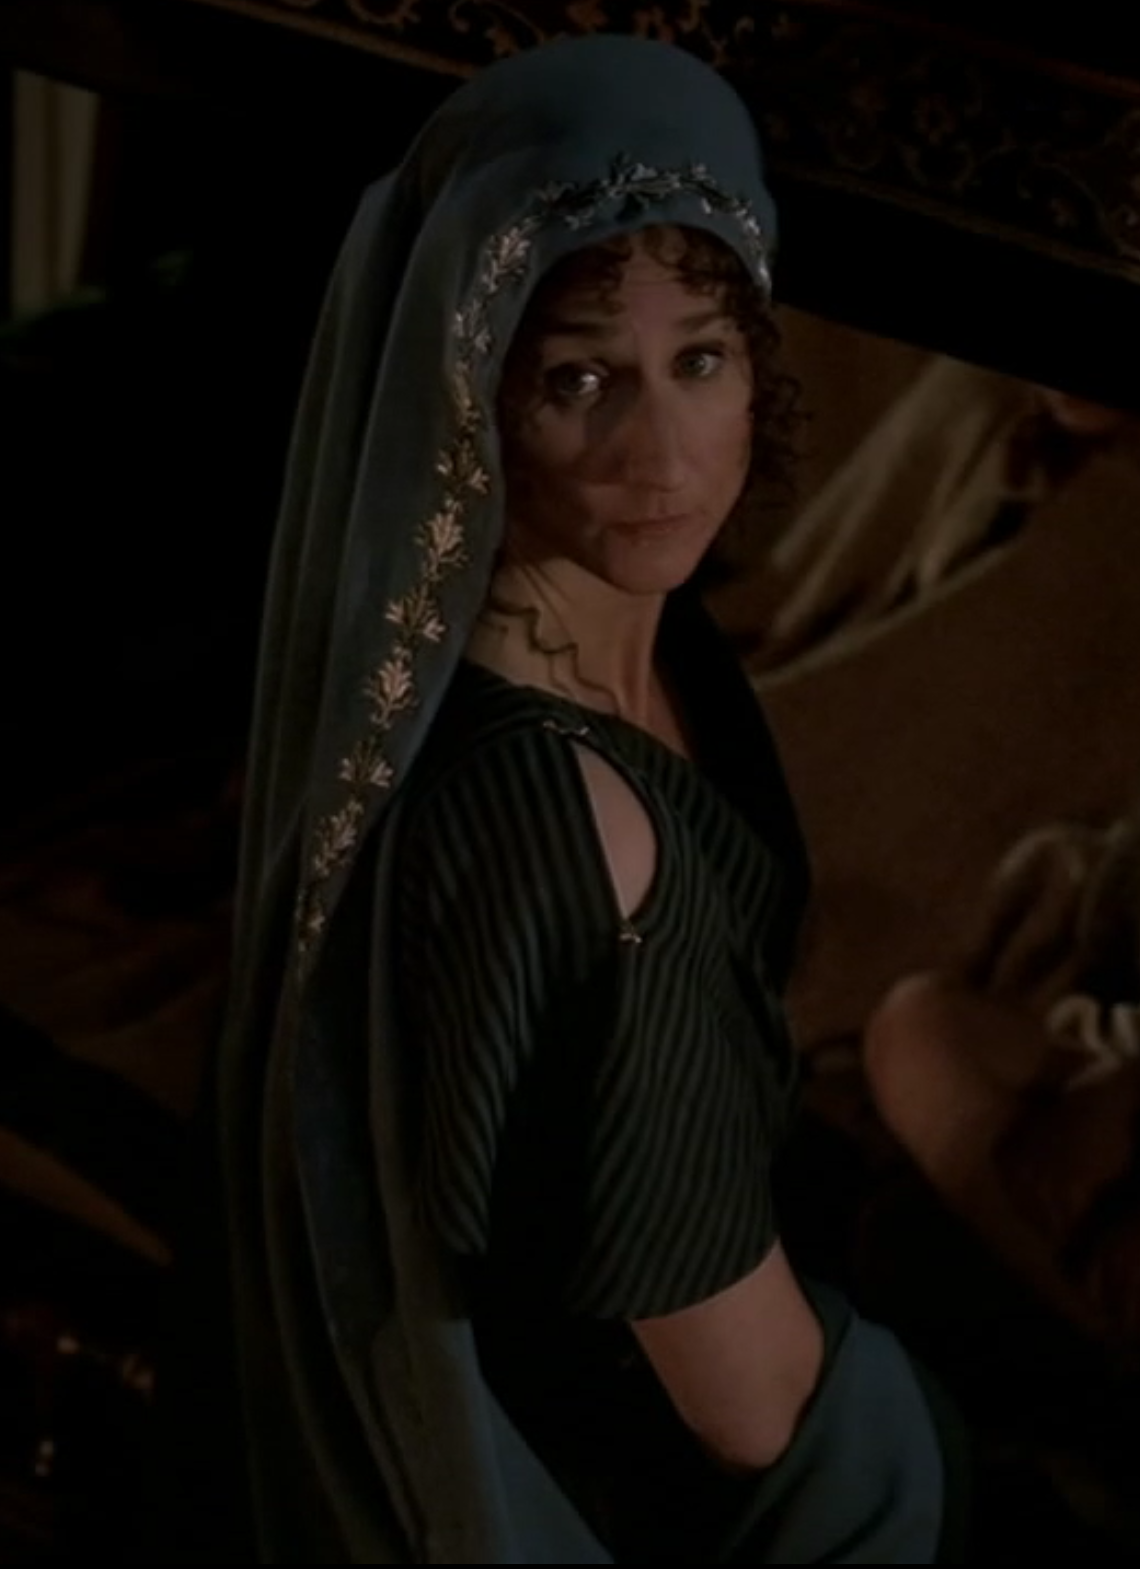 Pompey's wife, in a really pretty blue/gray veil thing with intricate metallic thread